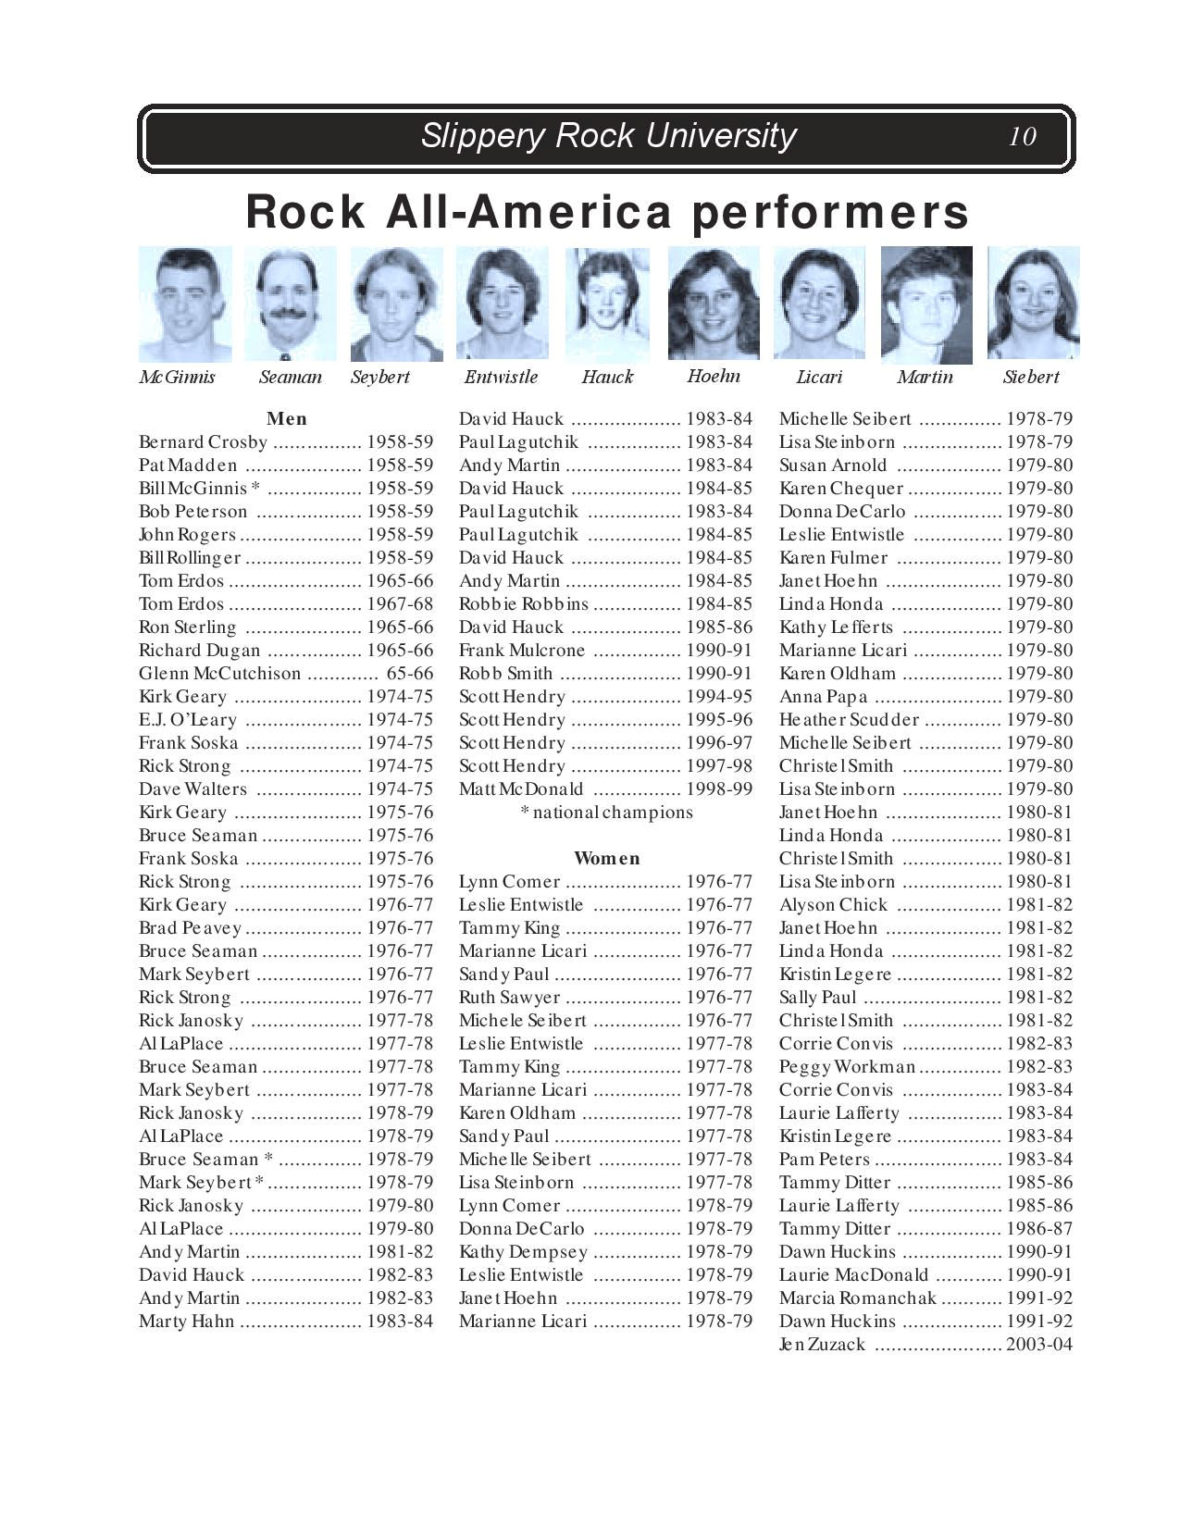 Slippery Rock All-America performers